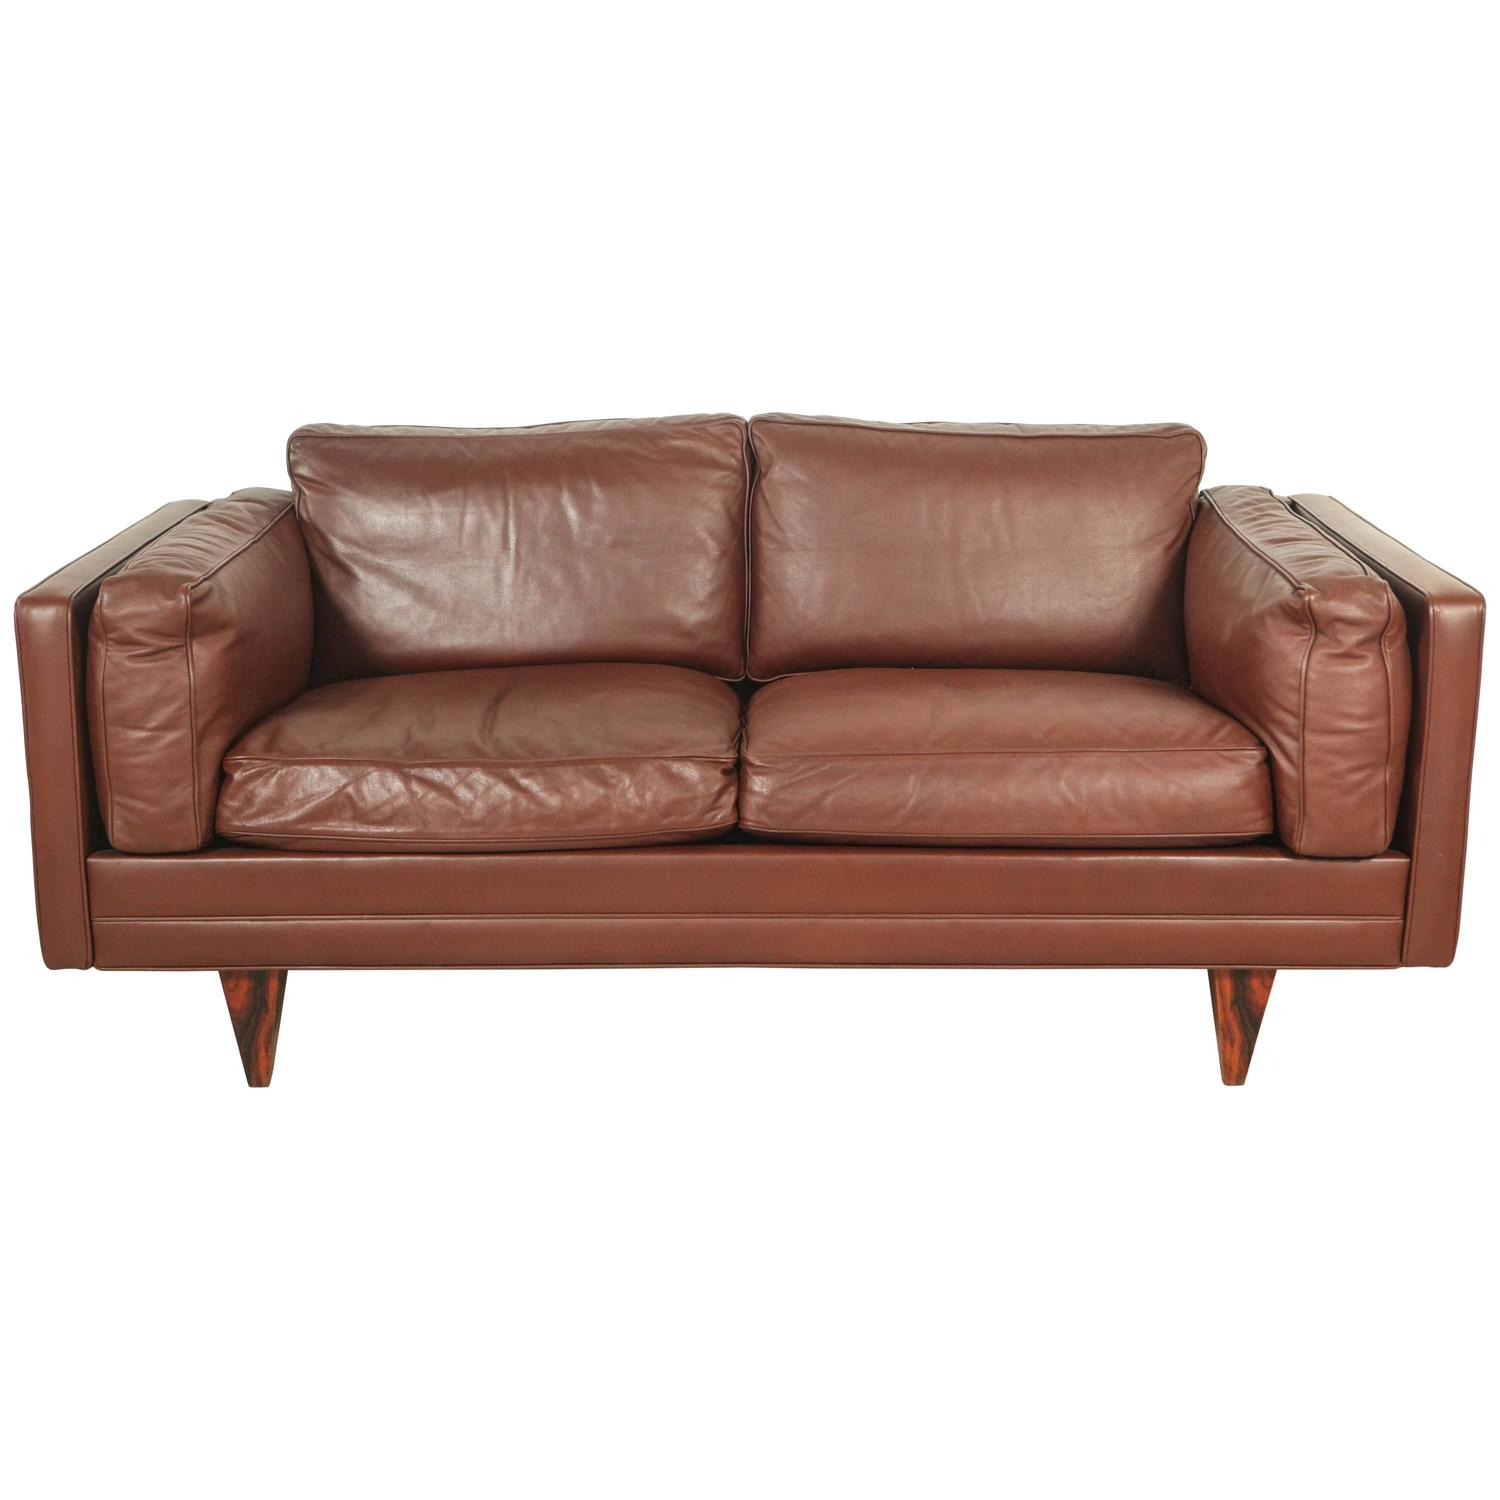 Illum Wikkels¸ Style Two Seater Sofa For Sale at 1stdibs